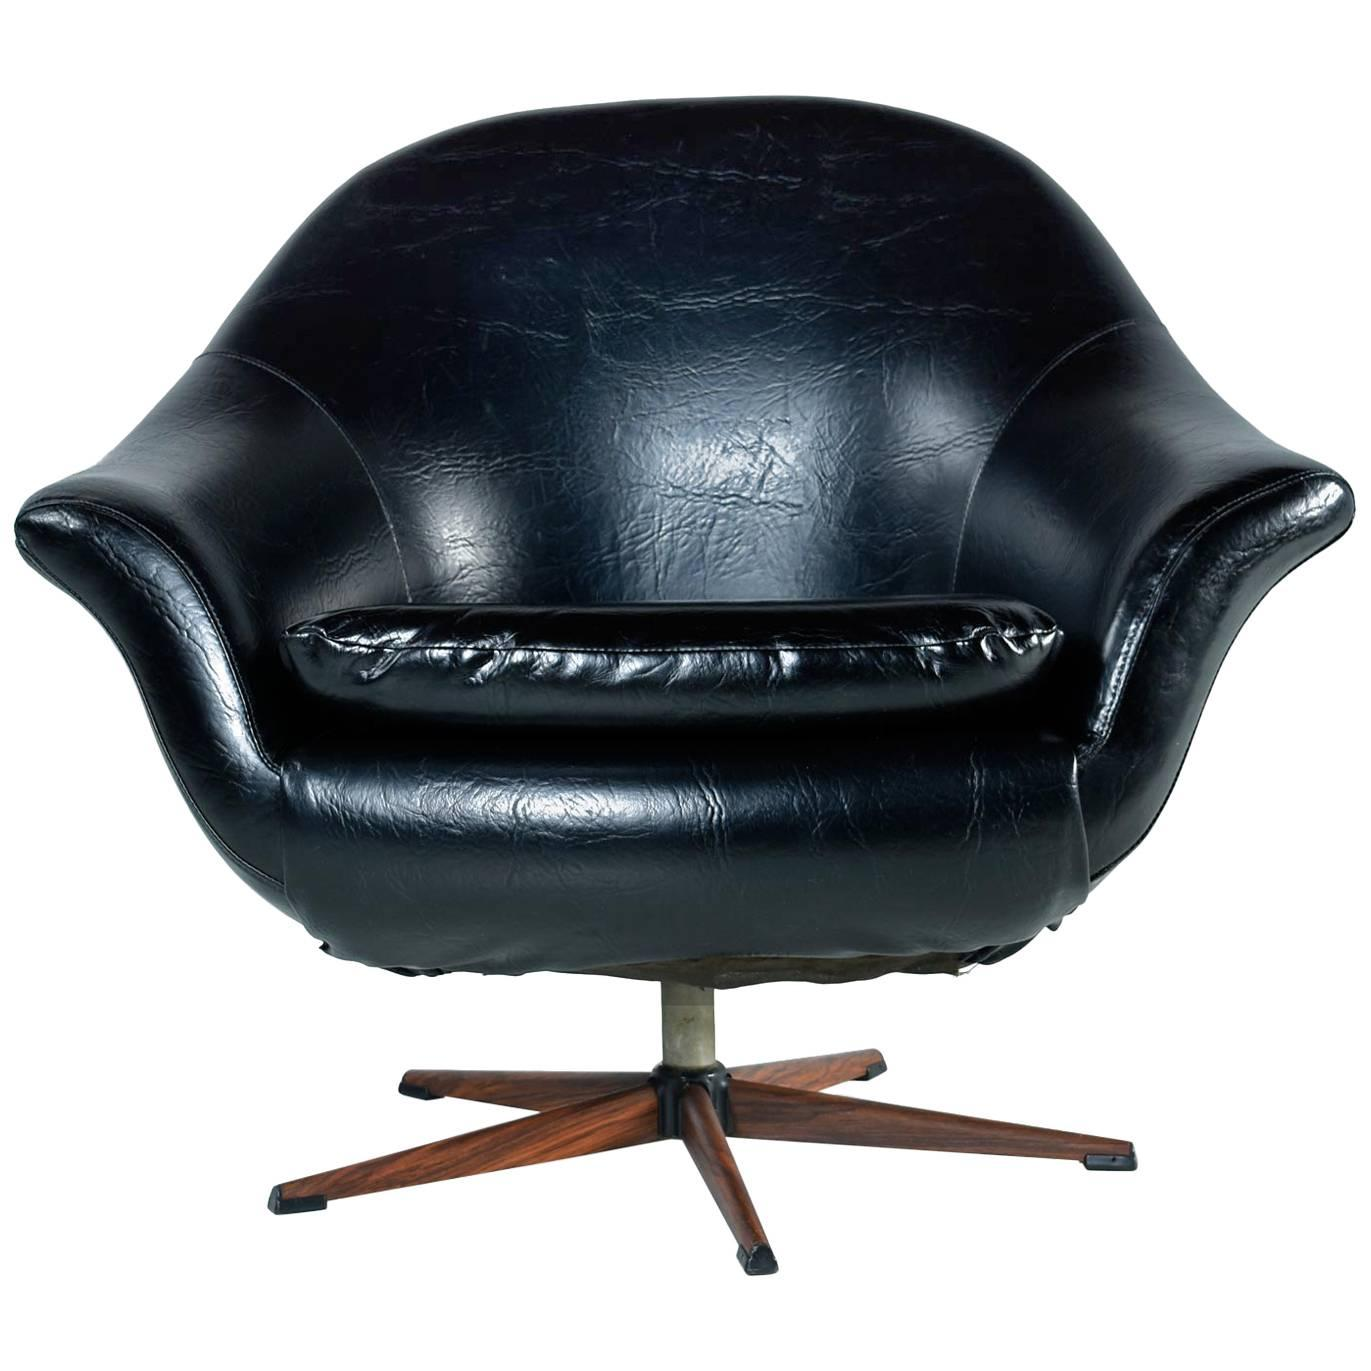 swivel pod chair kitchen table with bench seating and chairs mid century modern black vinyl rosewood base by burris for sale